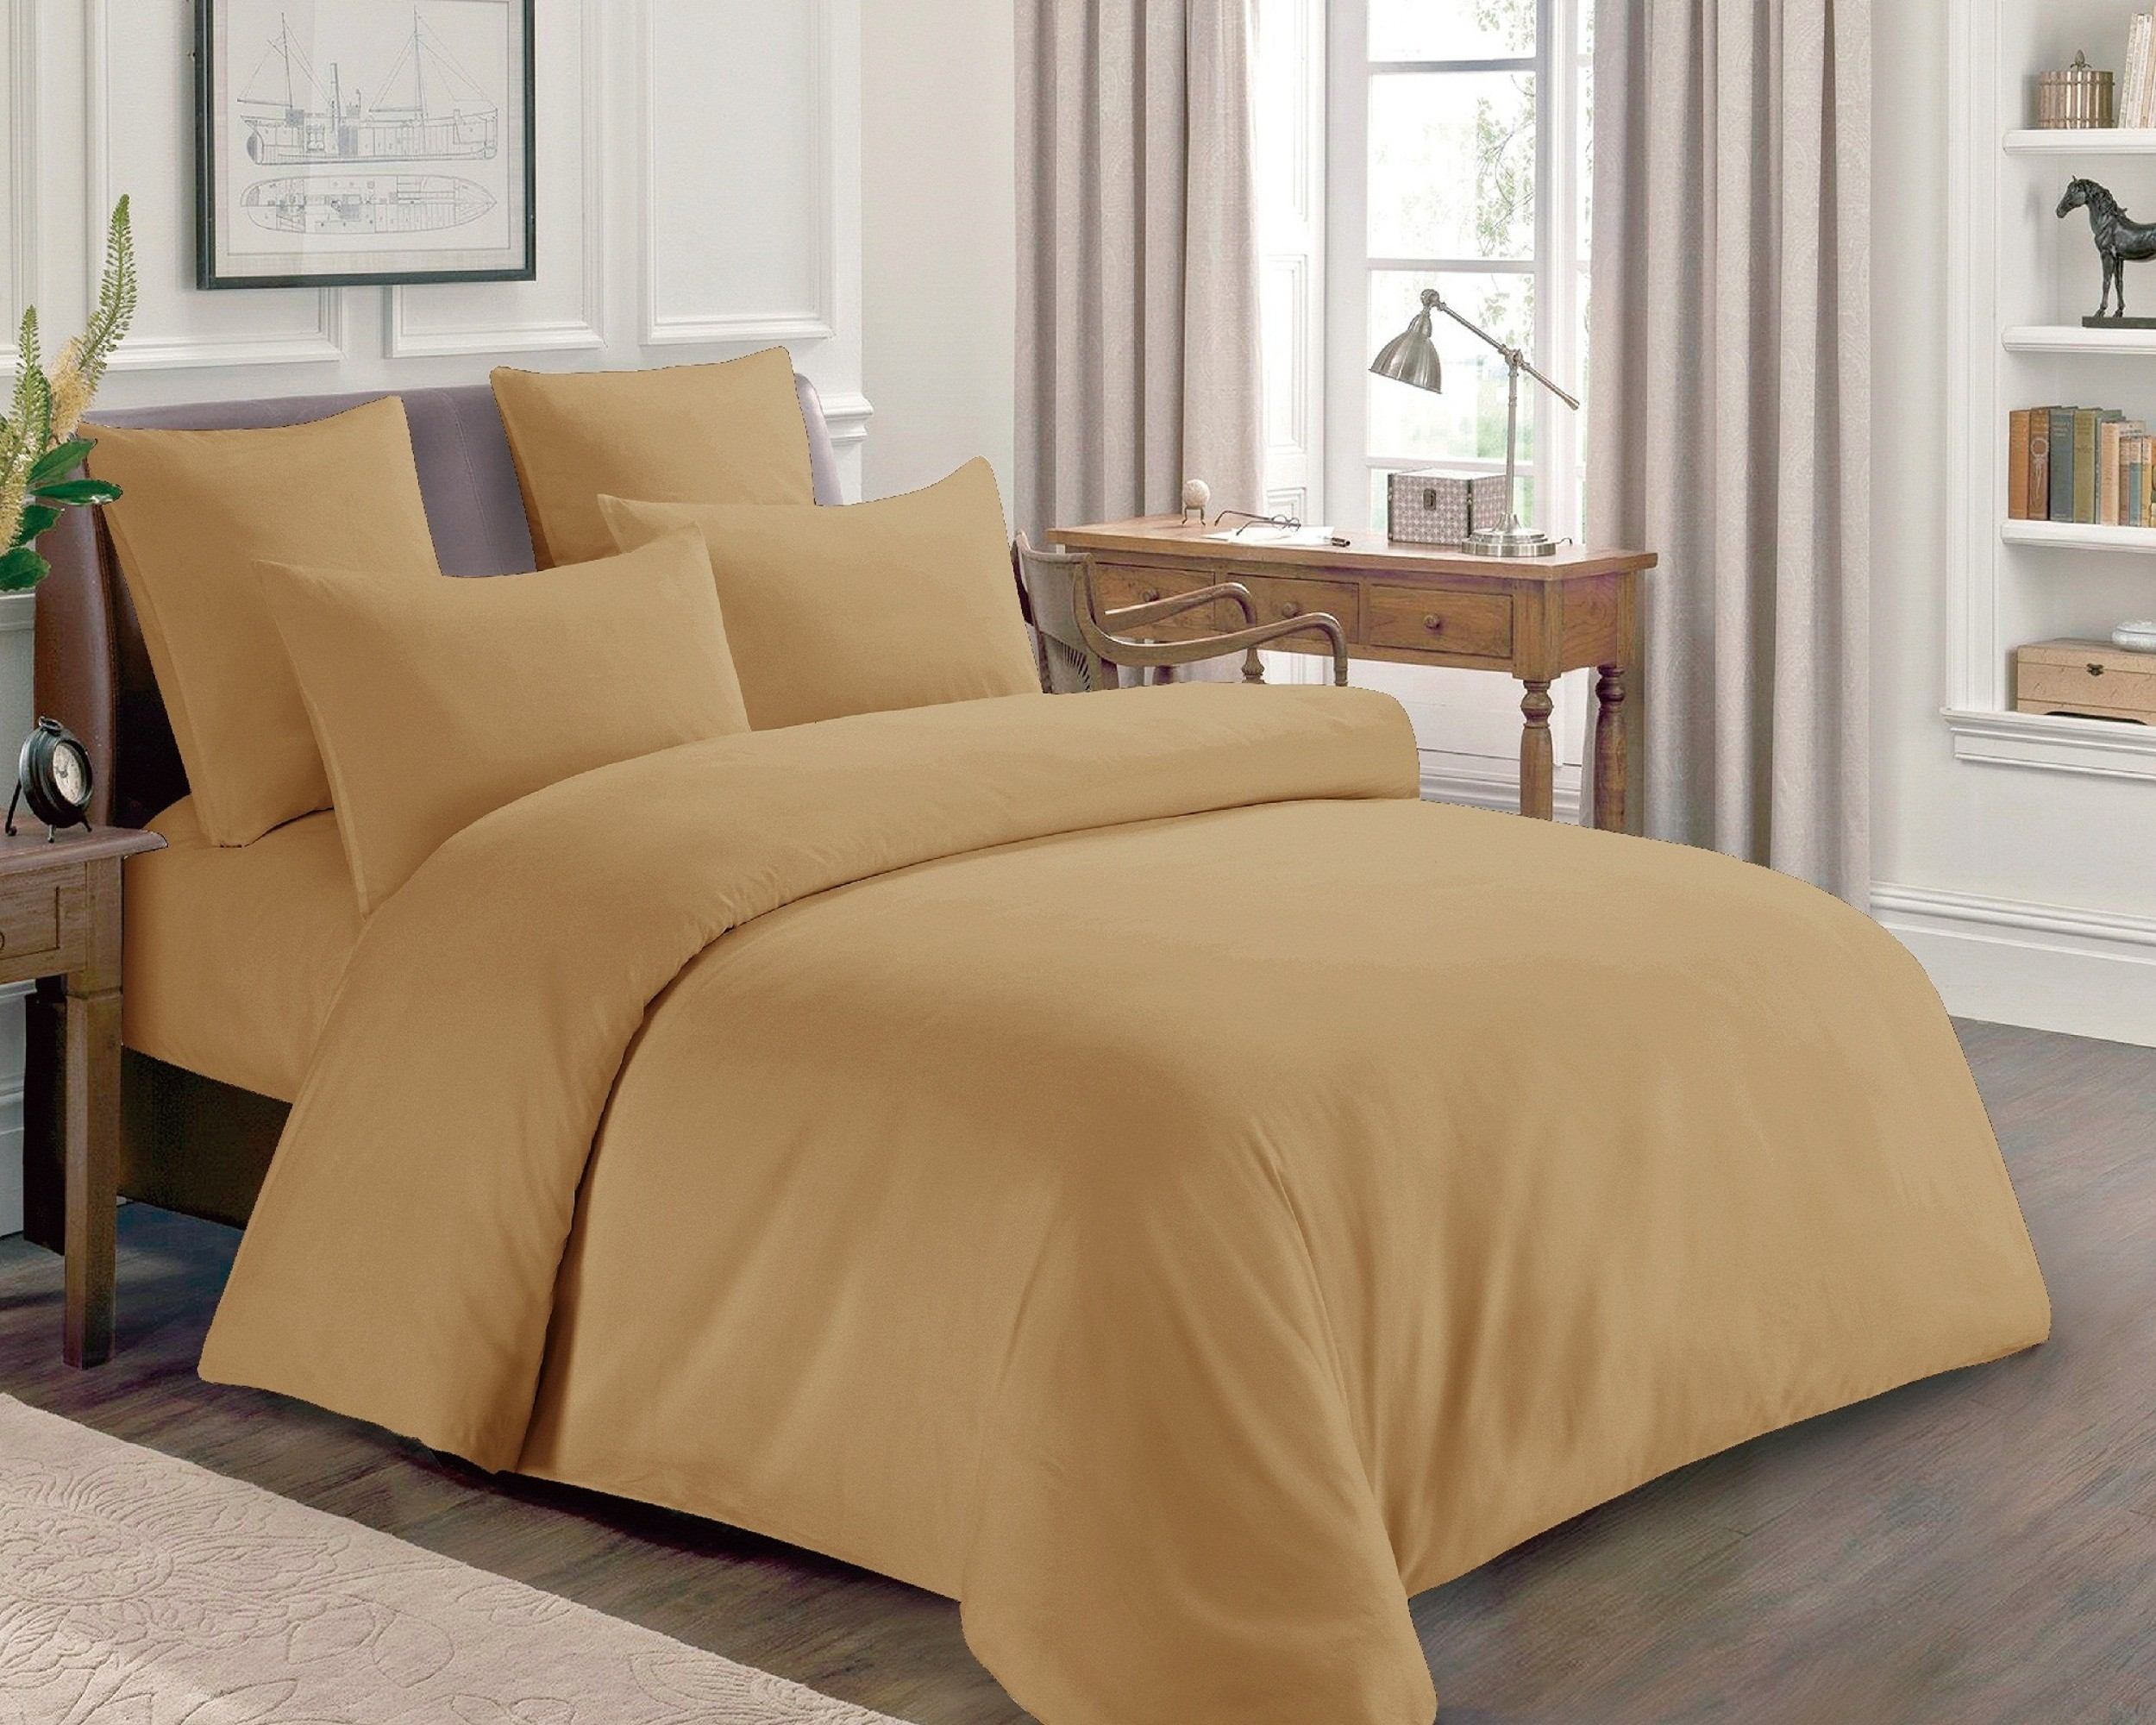 Isleep Premium Quality Soft Cotton Hotel Bed Sheet Set